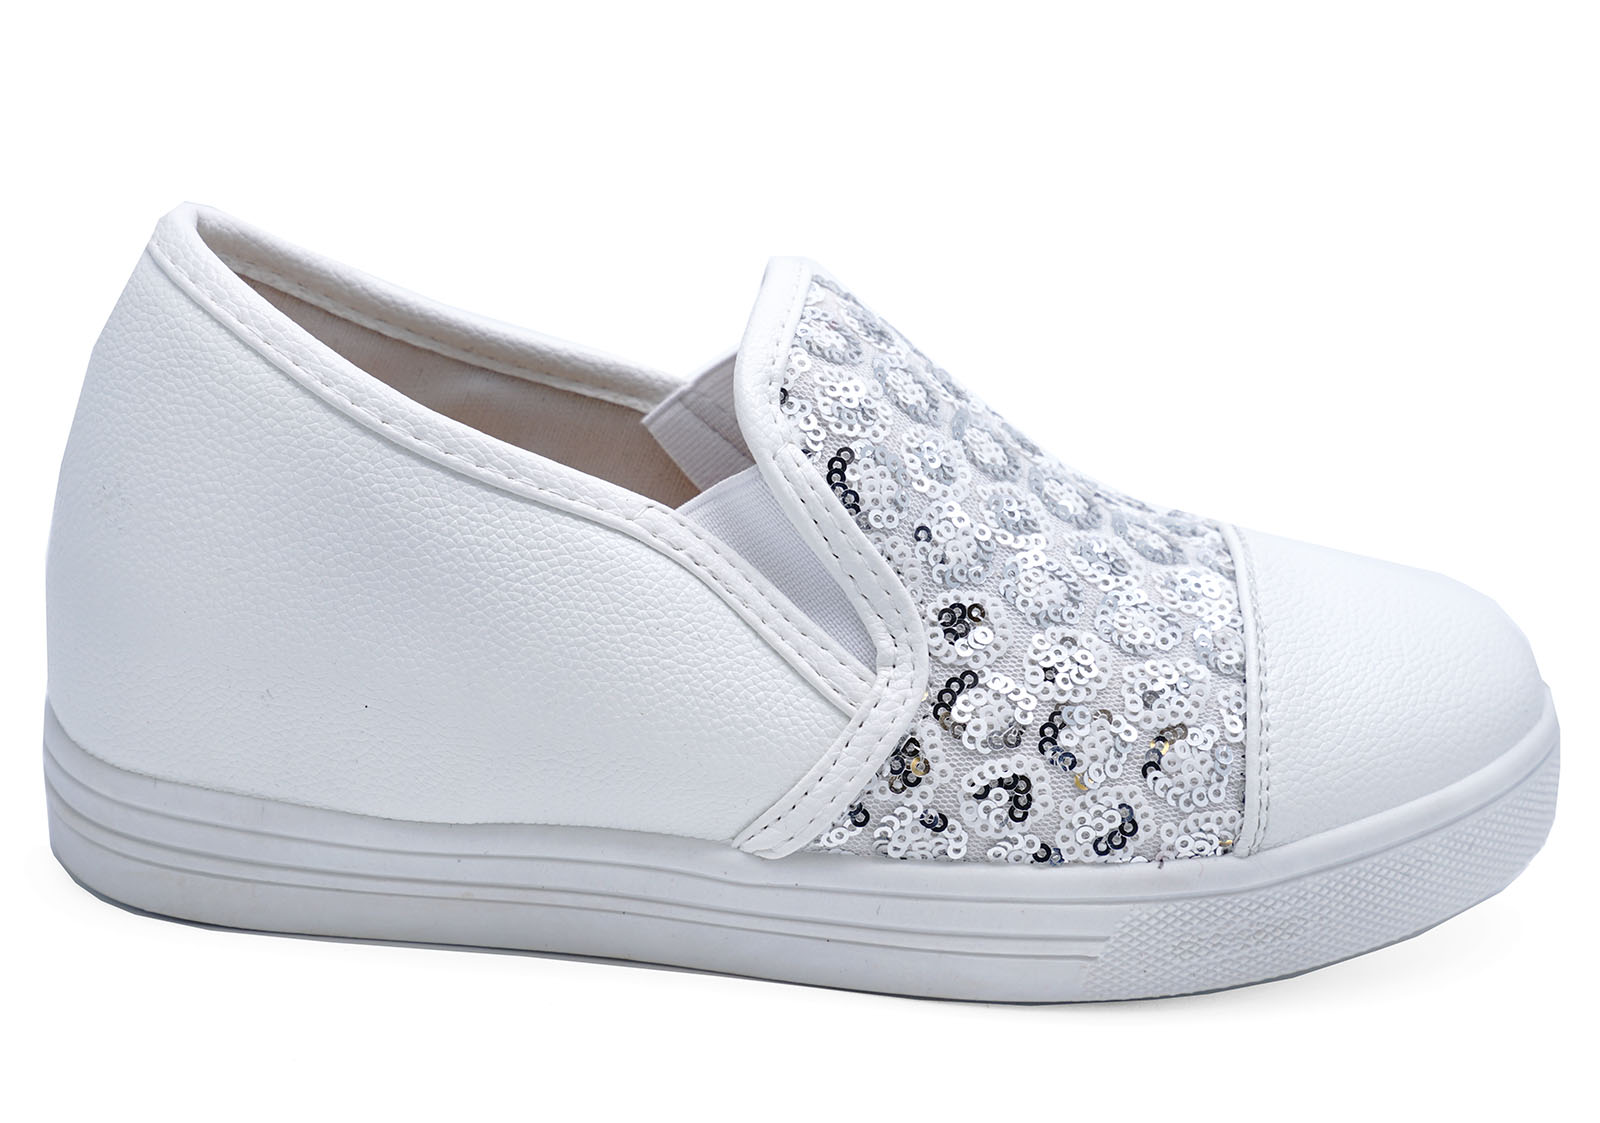 Details about WOMENS WHITE SILVER SEQUIN SLIP-ON COMFY PLIMSOLLS PUMPS  CASUAL SHOES SIZES 3-8 17fcaac5b8